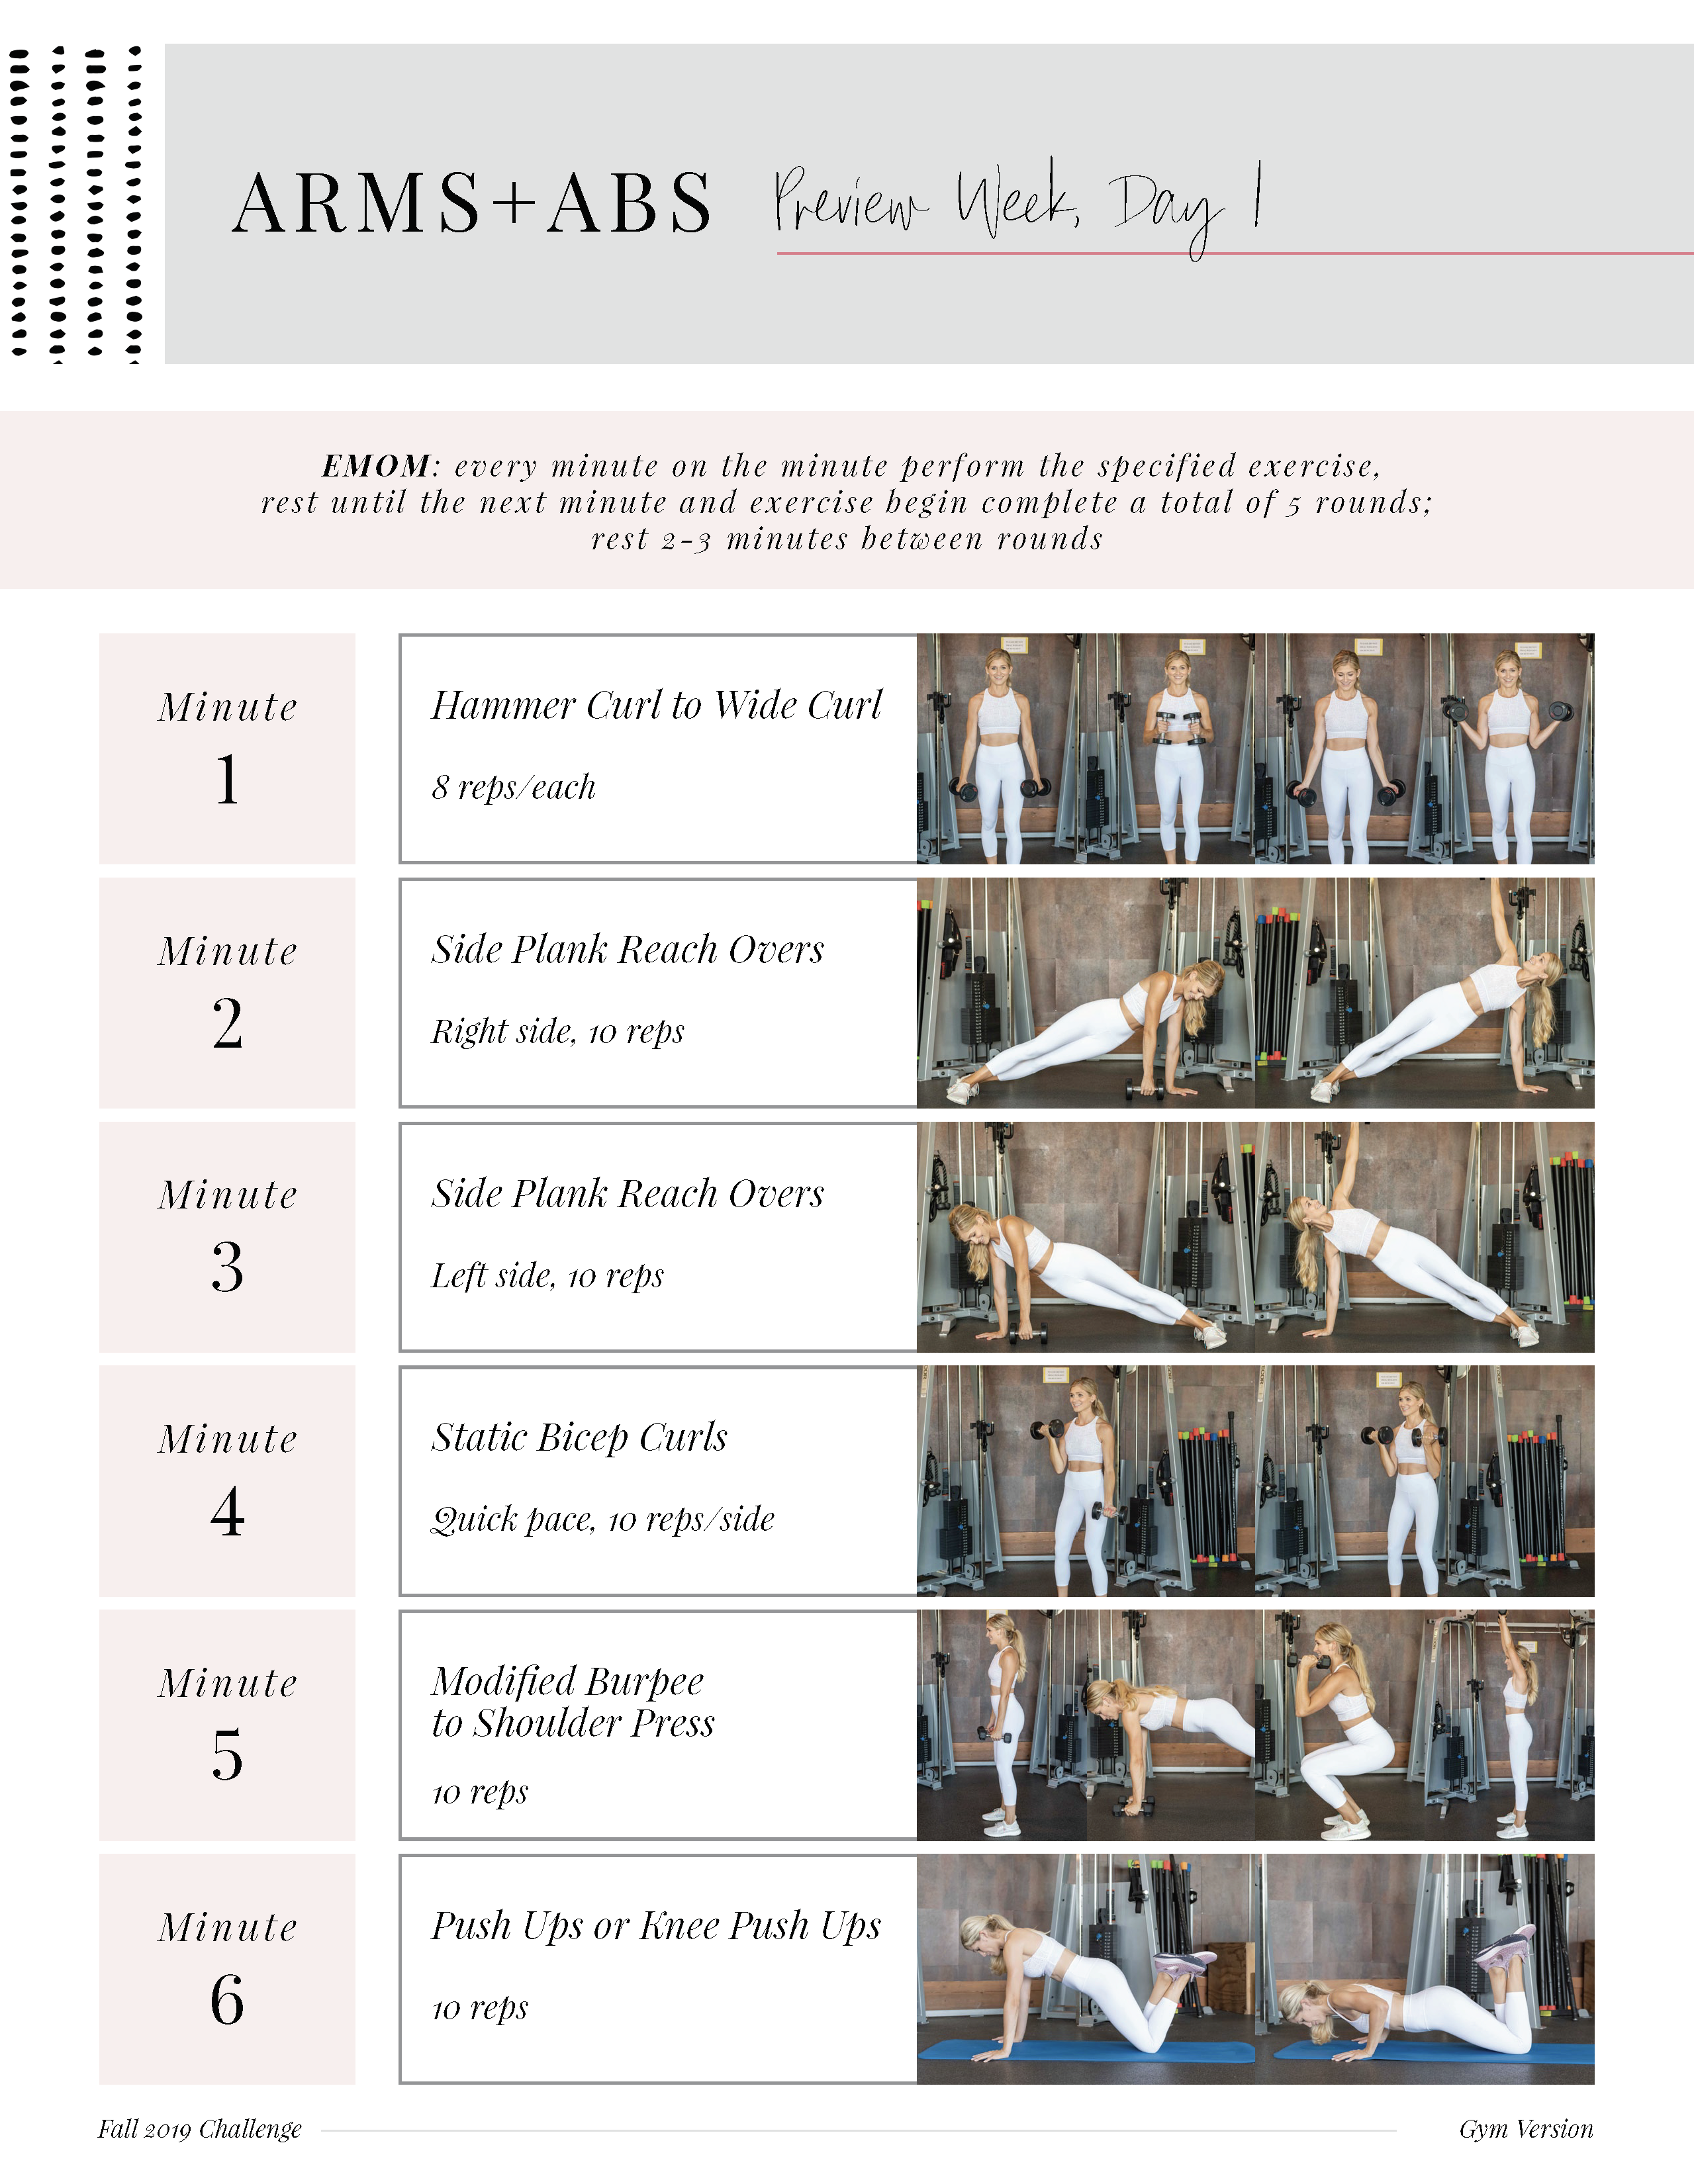 Fall Challenge Preview Week: Arms + Abs Workout (Day 1) - Lauren Gleisberg